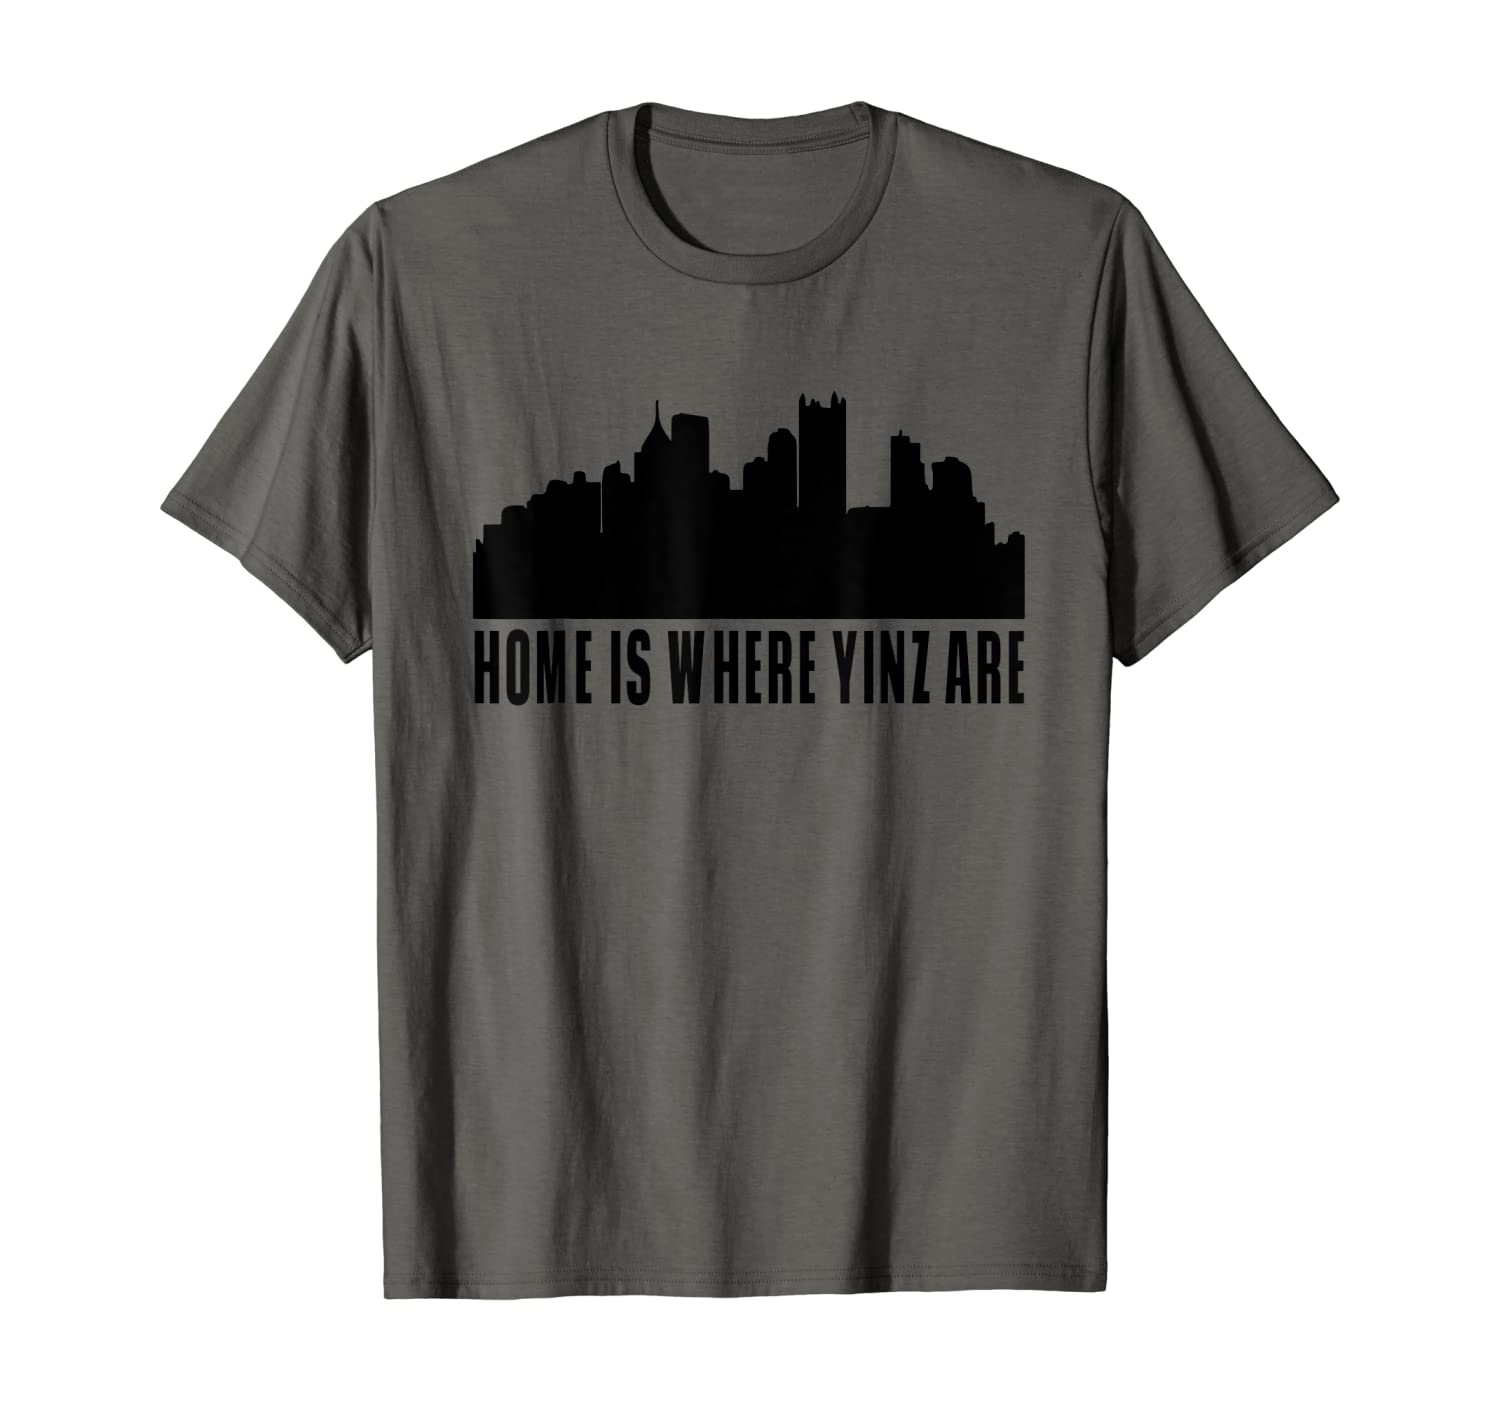 Pittsburgh Gifts - Home is where yinz are T-Shirt